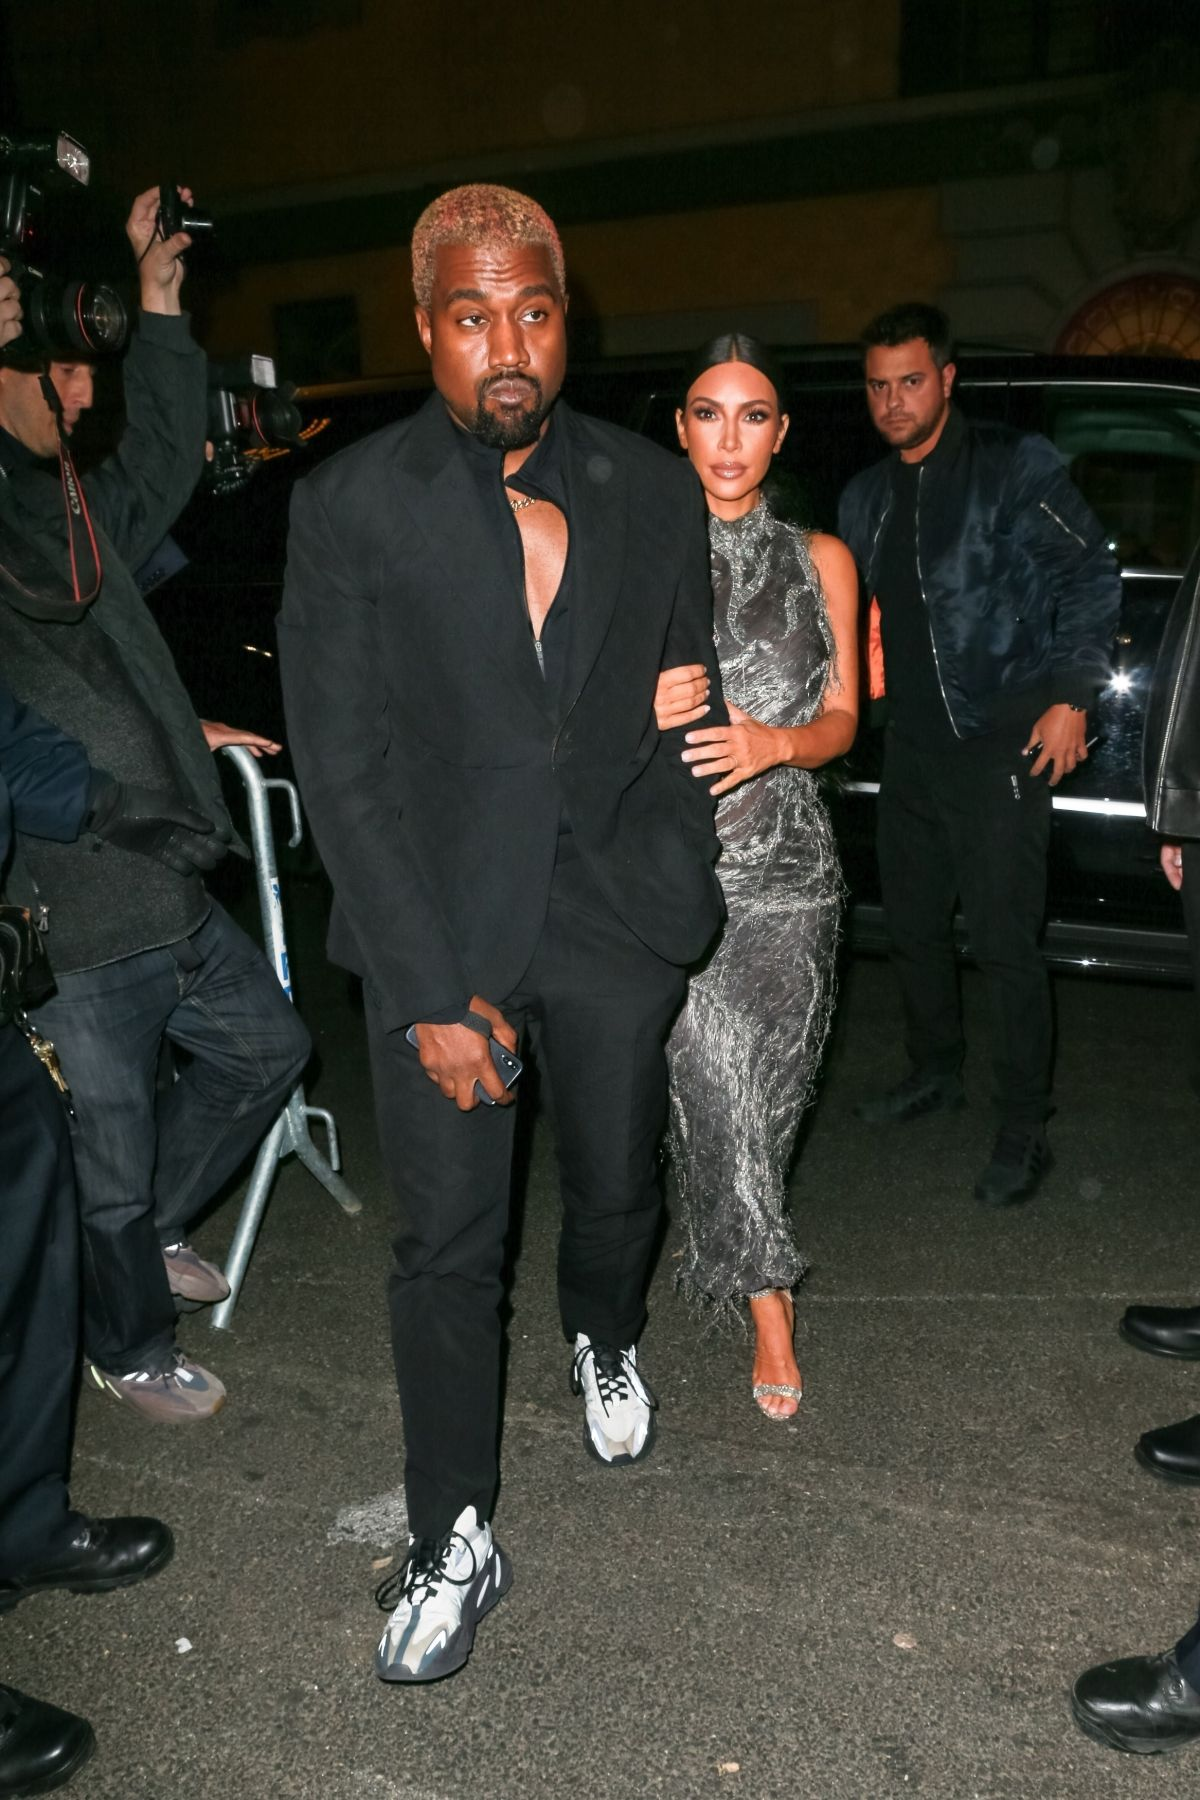 33c3daaee9da Kim Kardashian and Kanye West look dressed up for the Cher musical in New  York